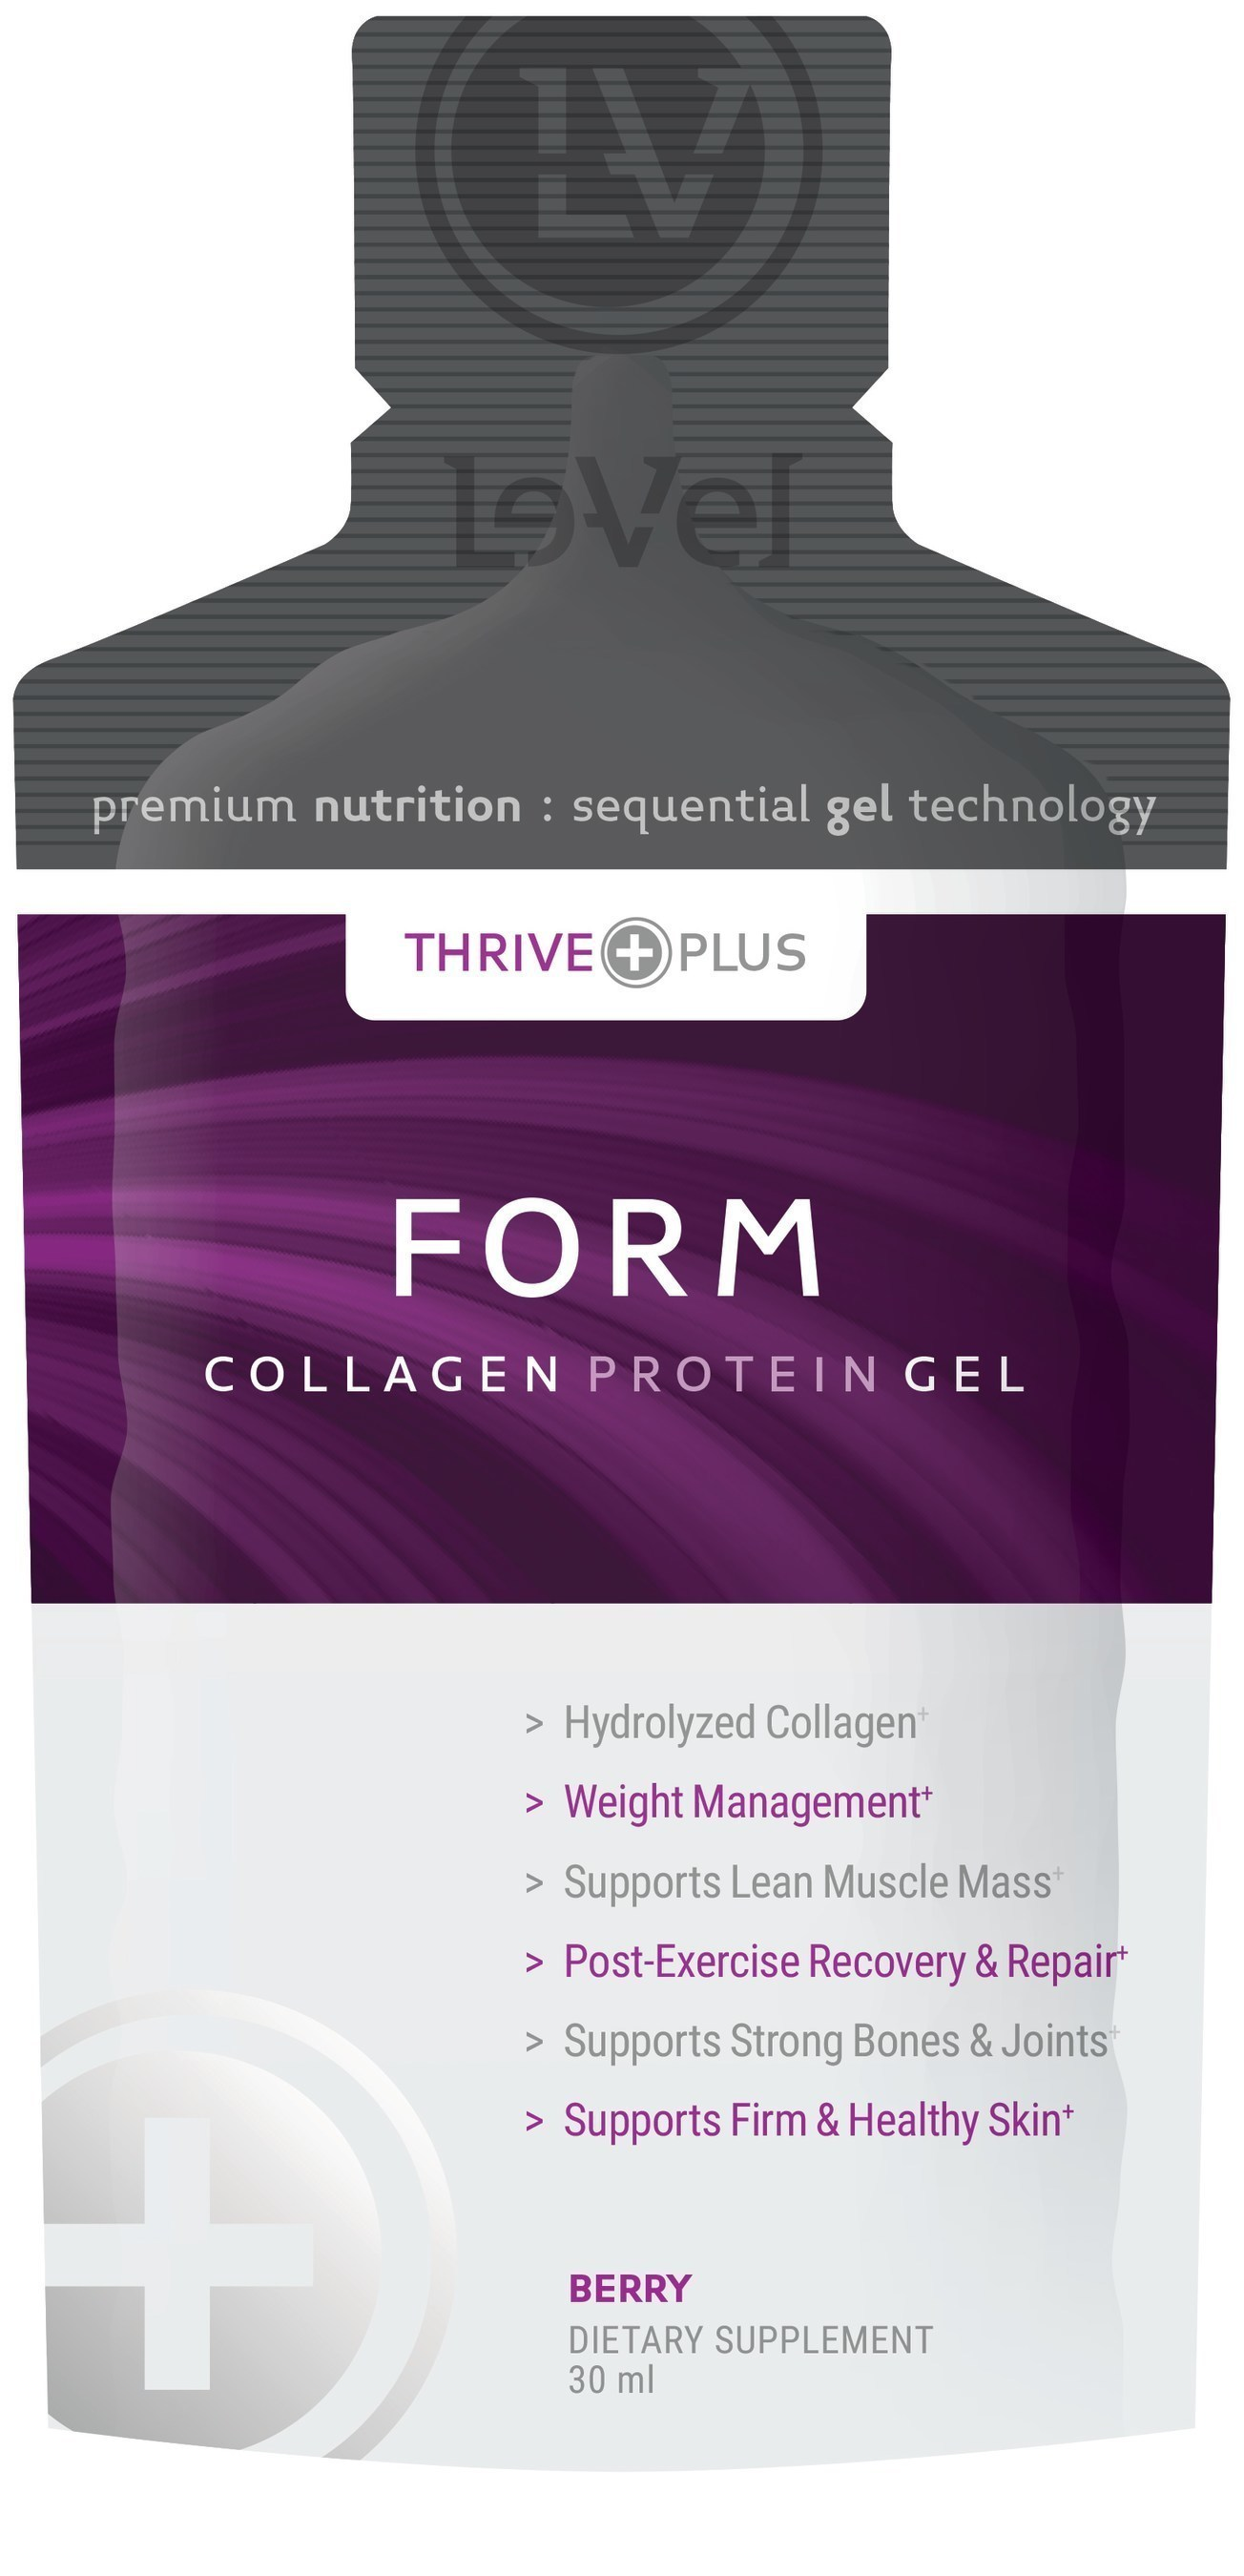 FORM: The world's first sequentially absorbed hydrolyzed collagen protein.